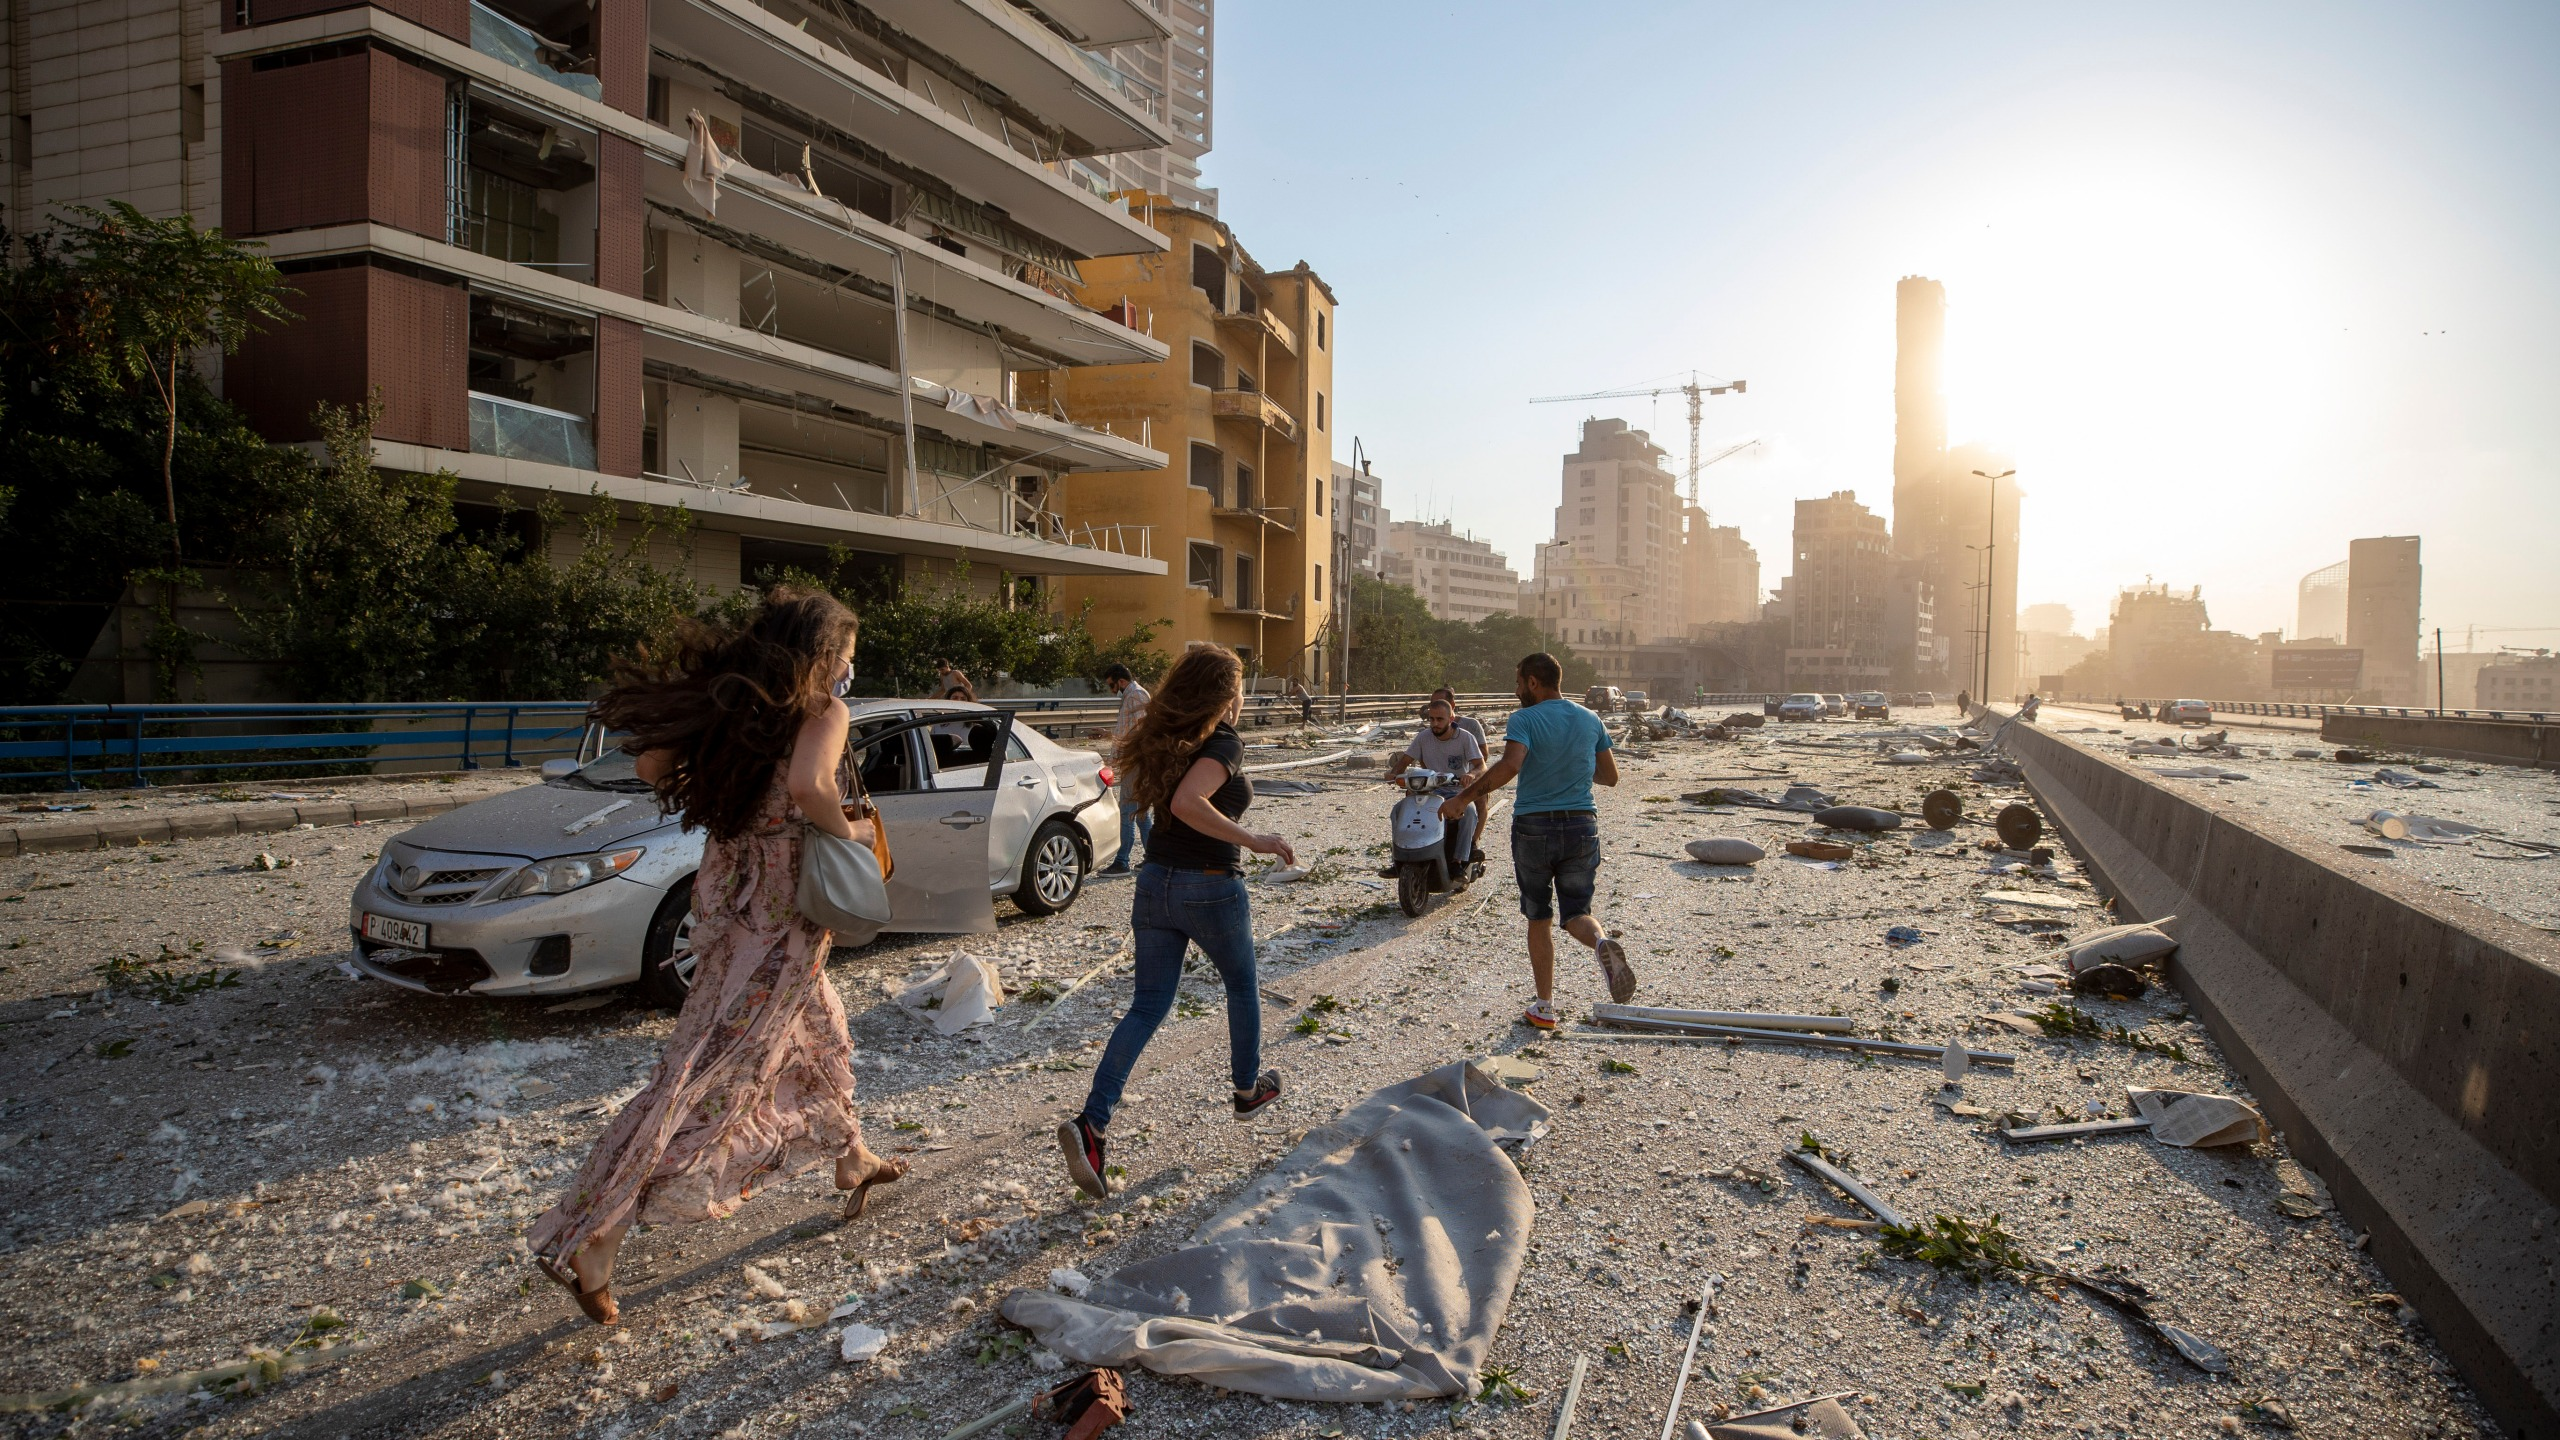 Lebanese health minister says at least 50 people were killed and ...